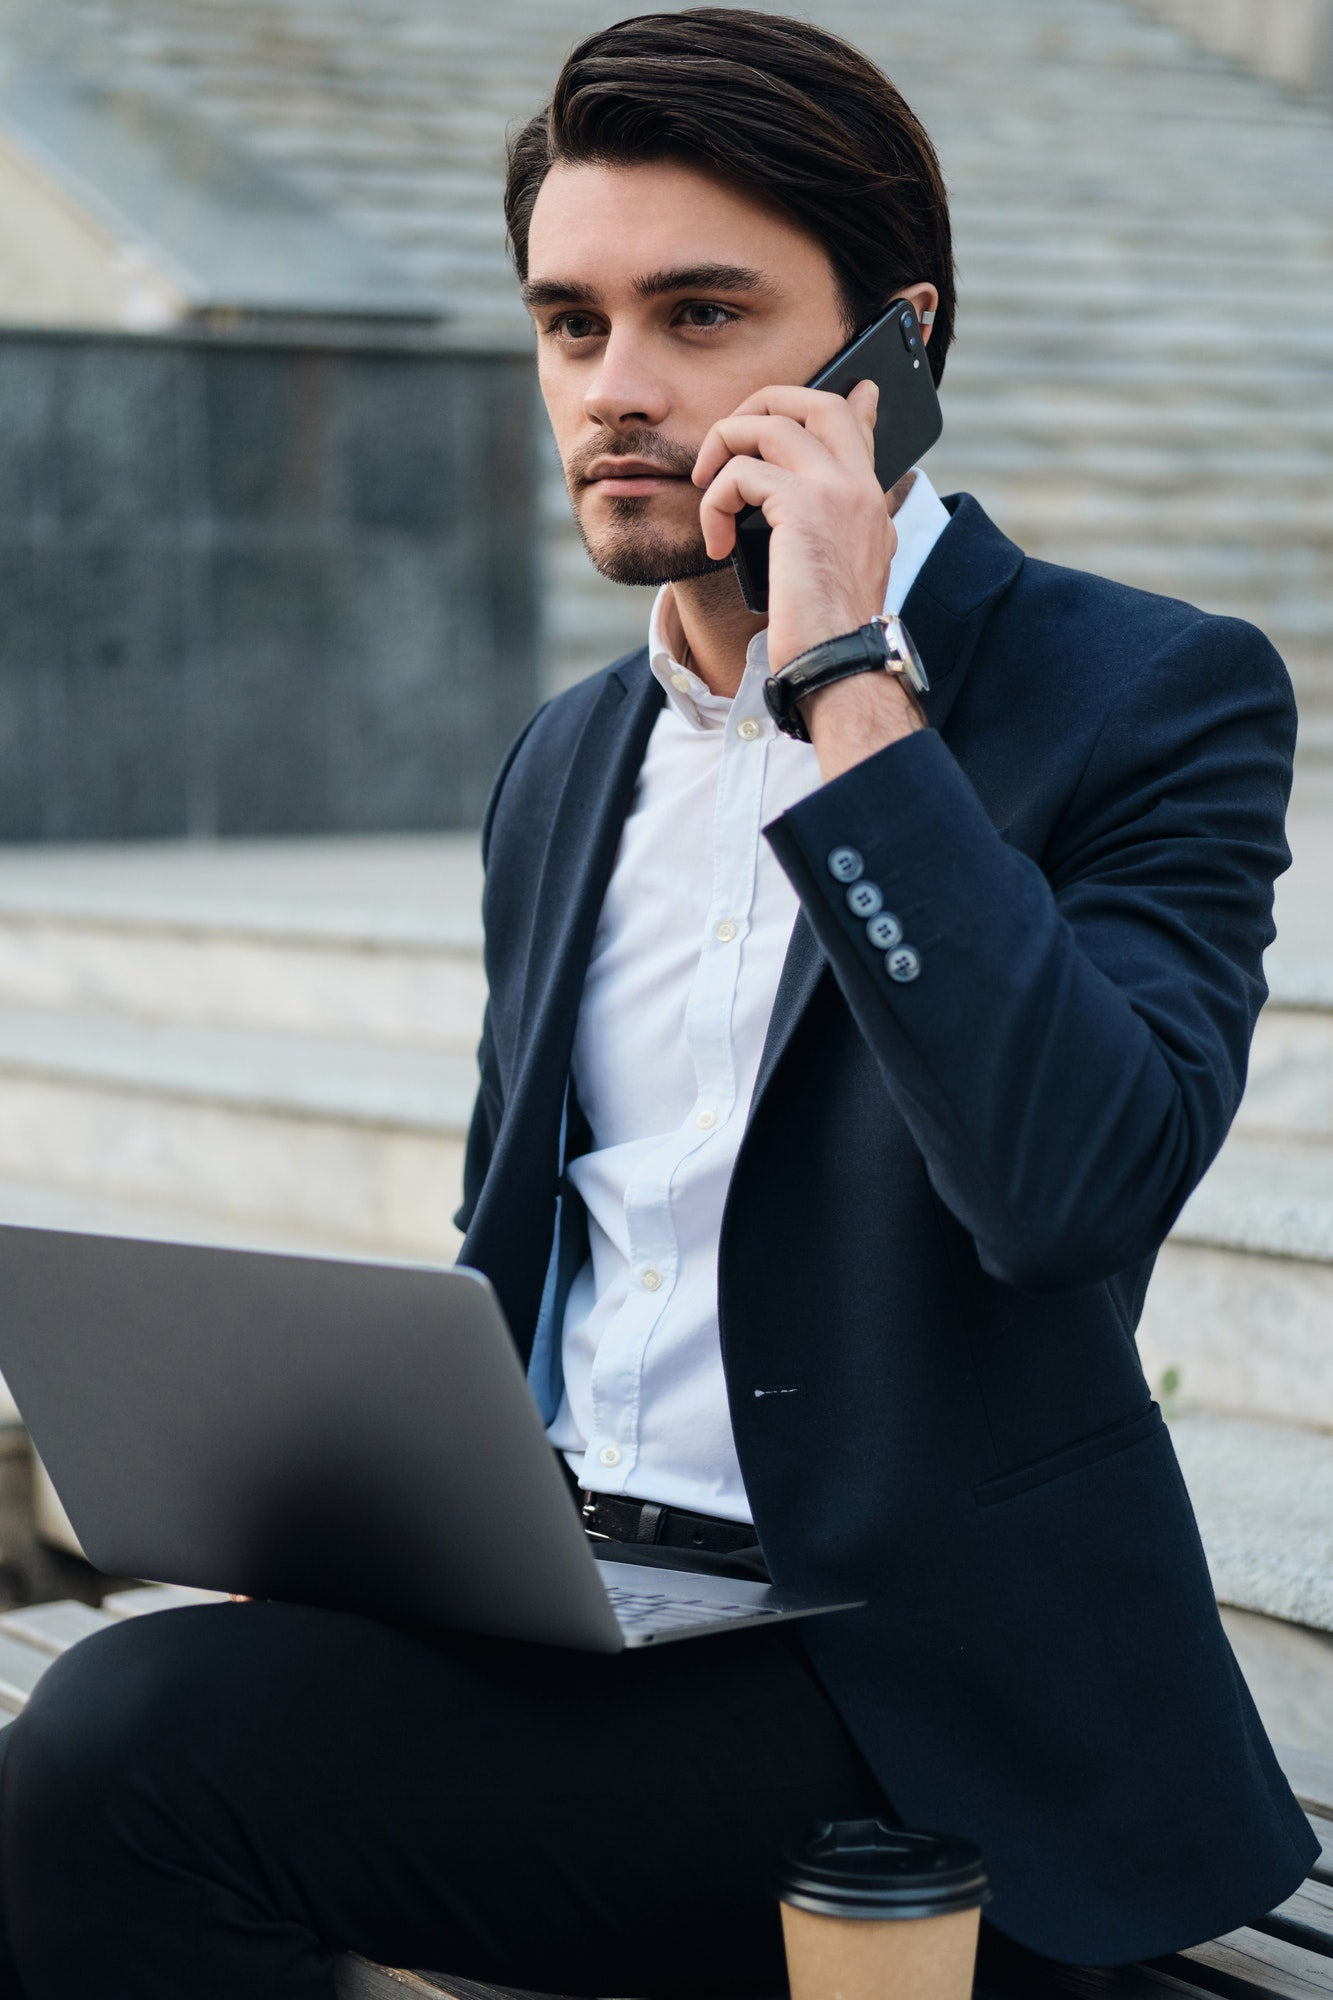 Young businessman in suit sitting on bench with laptop dreamily looking aside talking on cellphone